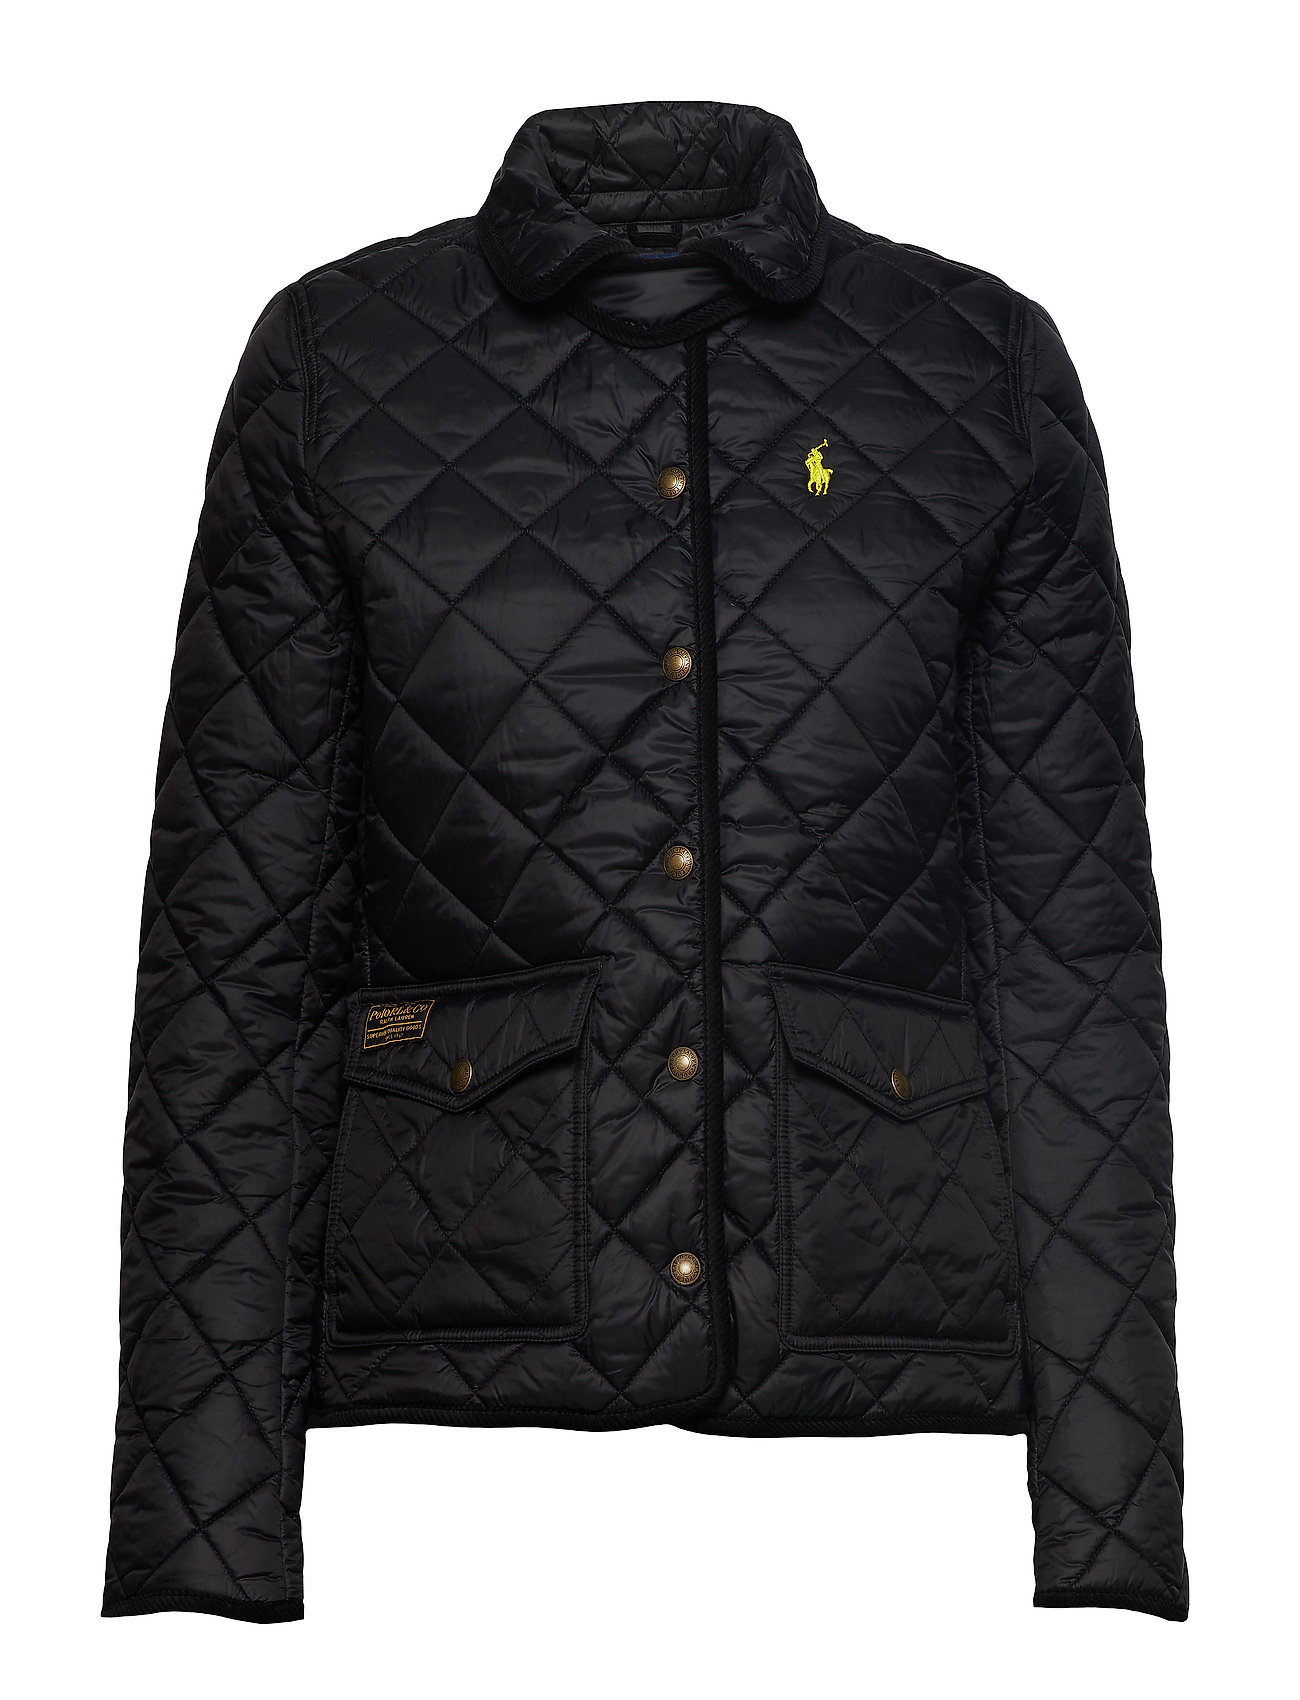 Polo Ralph Lauren Quilted Jacket - POLO BLACK